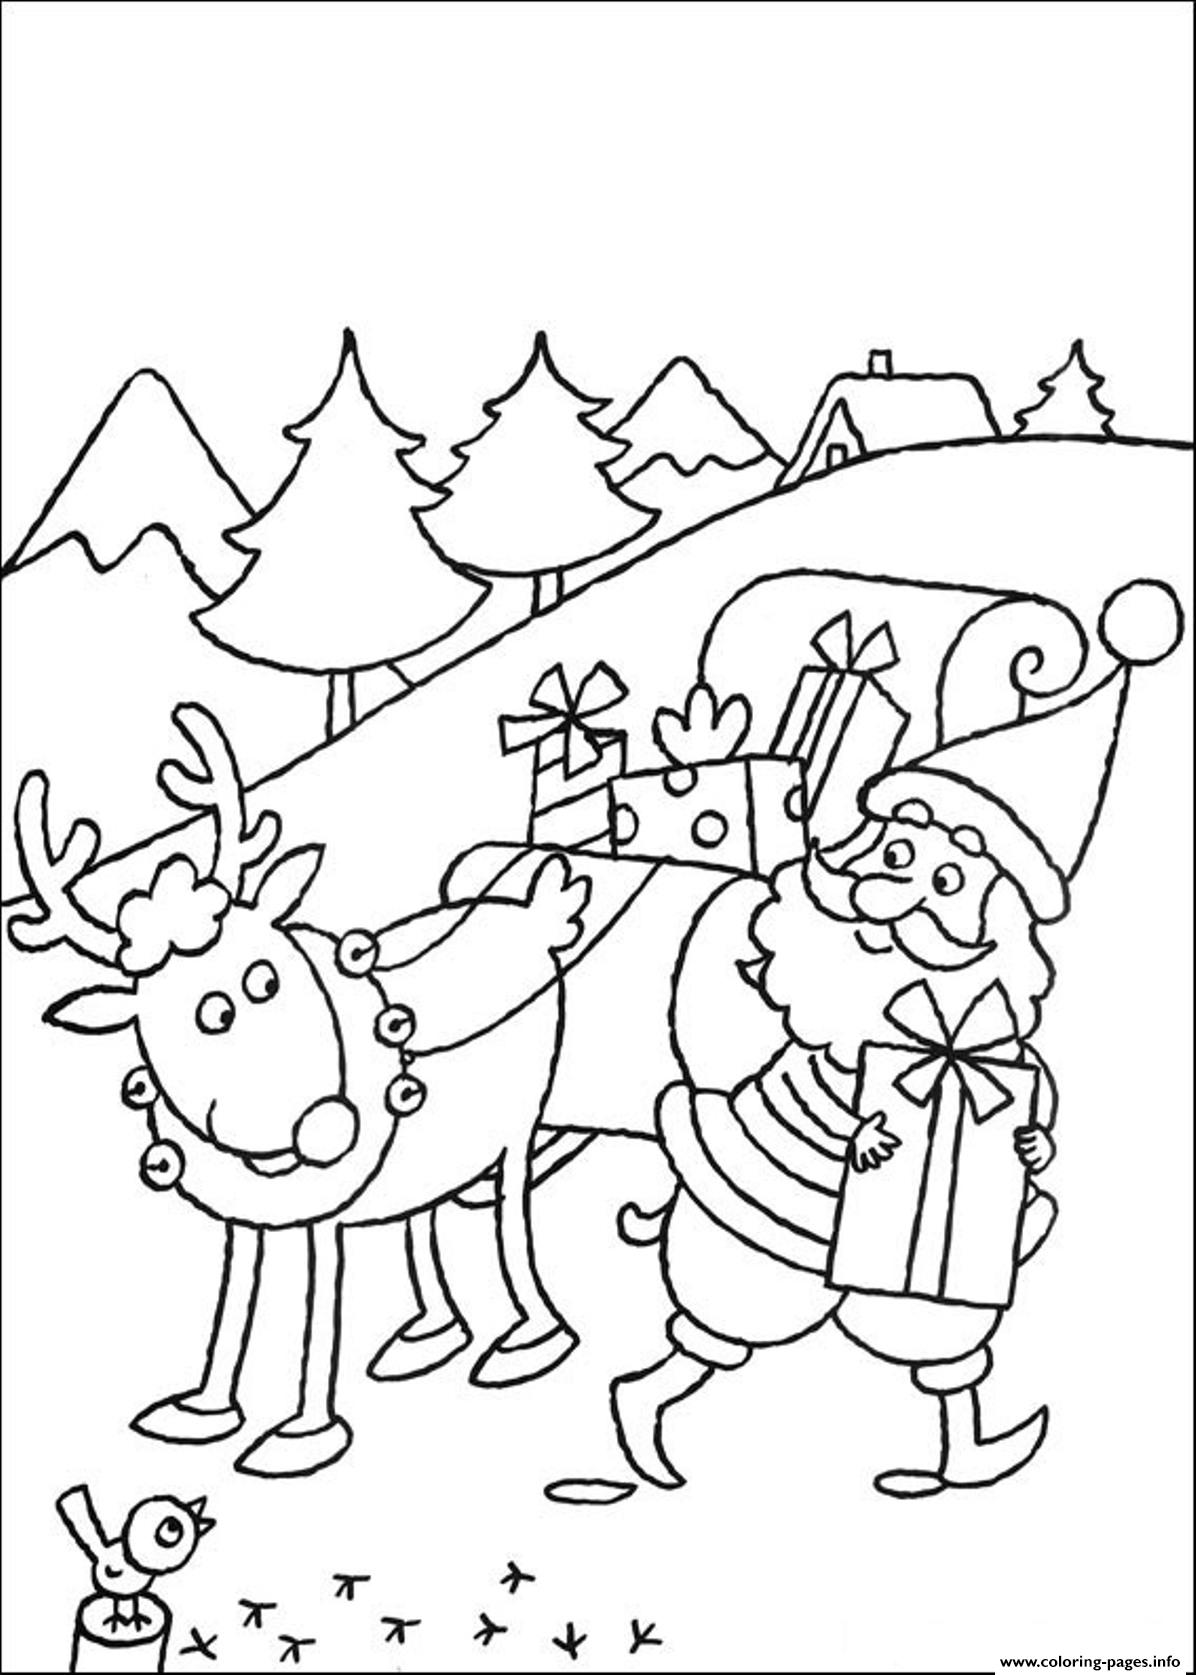 Santa Coloring Pages With Reindeer Kids And S824c Printable